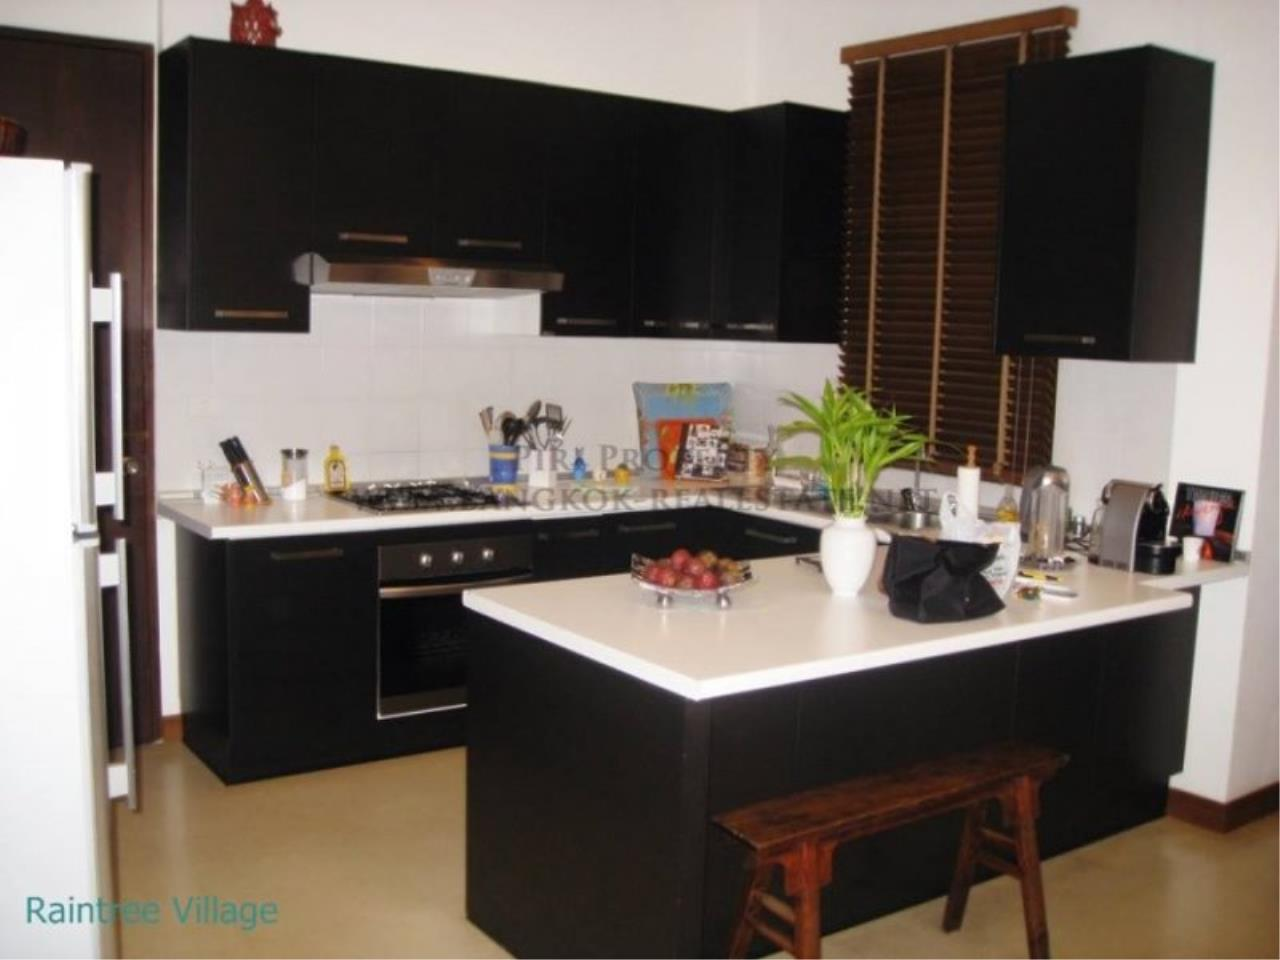 Piri Property Agency's Townhouse Apartment nearby Emporium for Rent - 3 plus 1 Bedroom 18